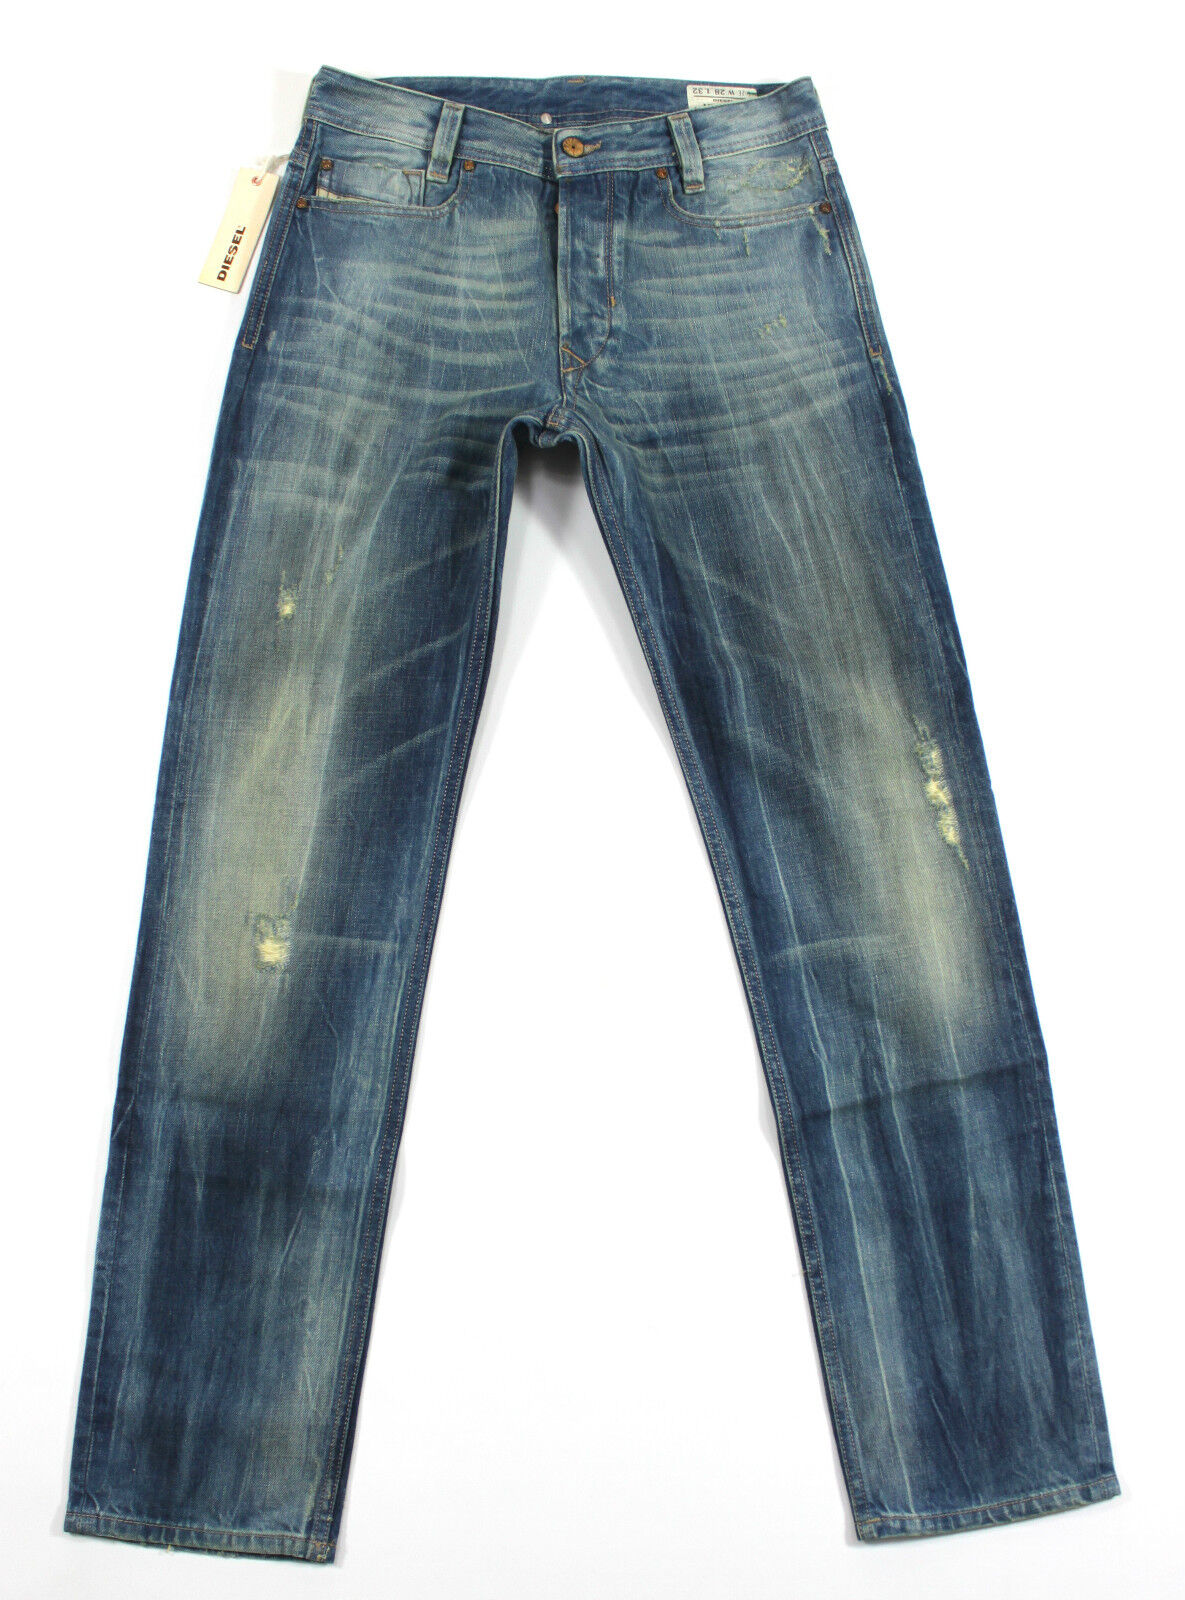 BRAND NEW DIESEL HEEVEN 8TV JEANS 28X32 CARred FIT TAPERED LEG 008TV